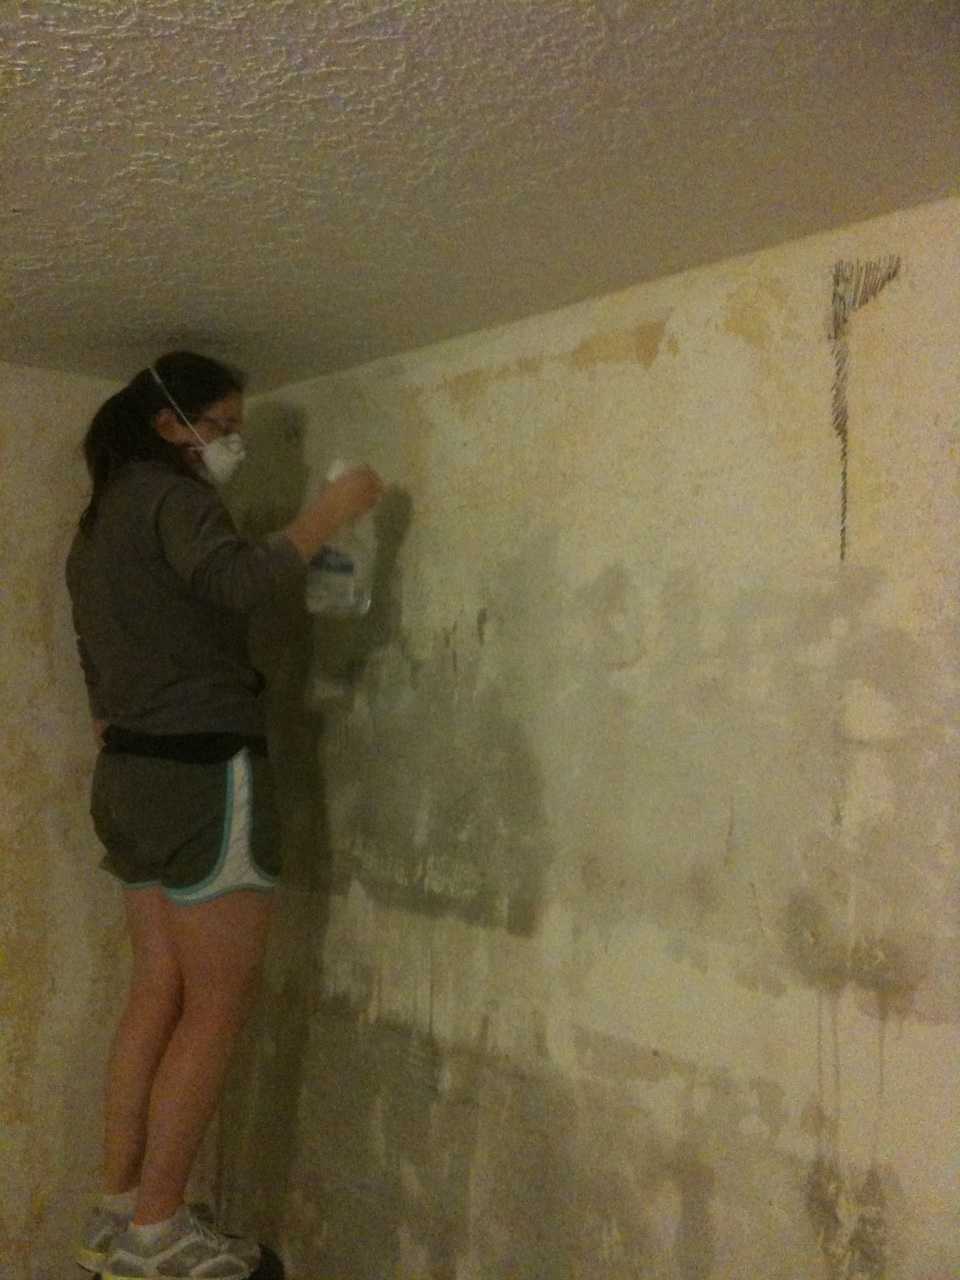 Taking Wallpaper Down